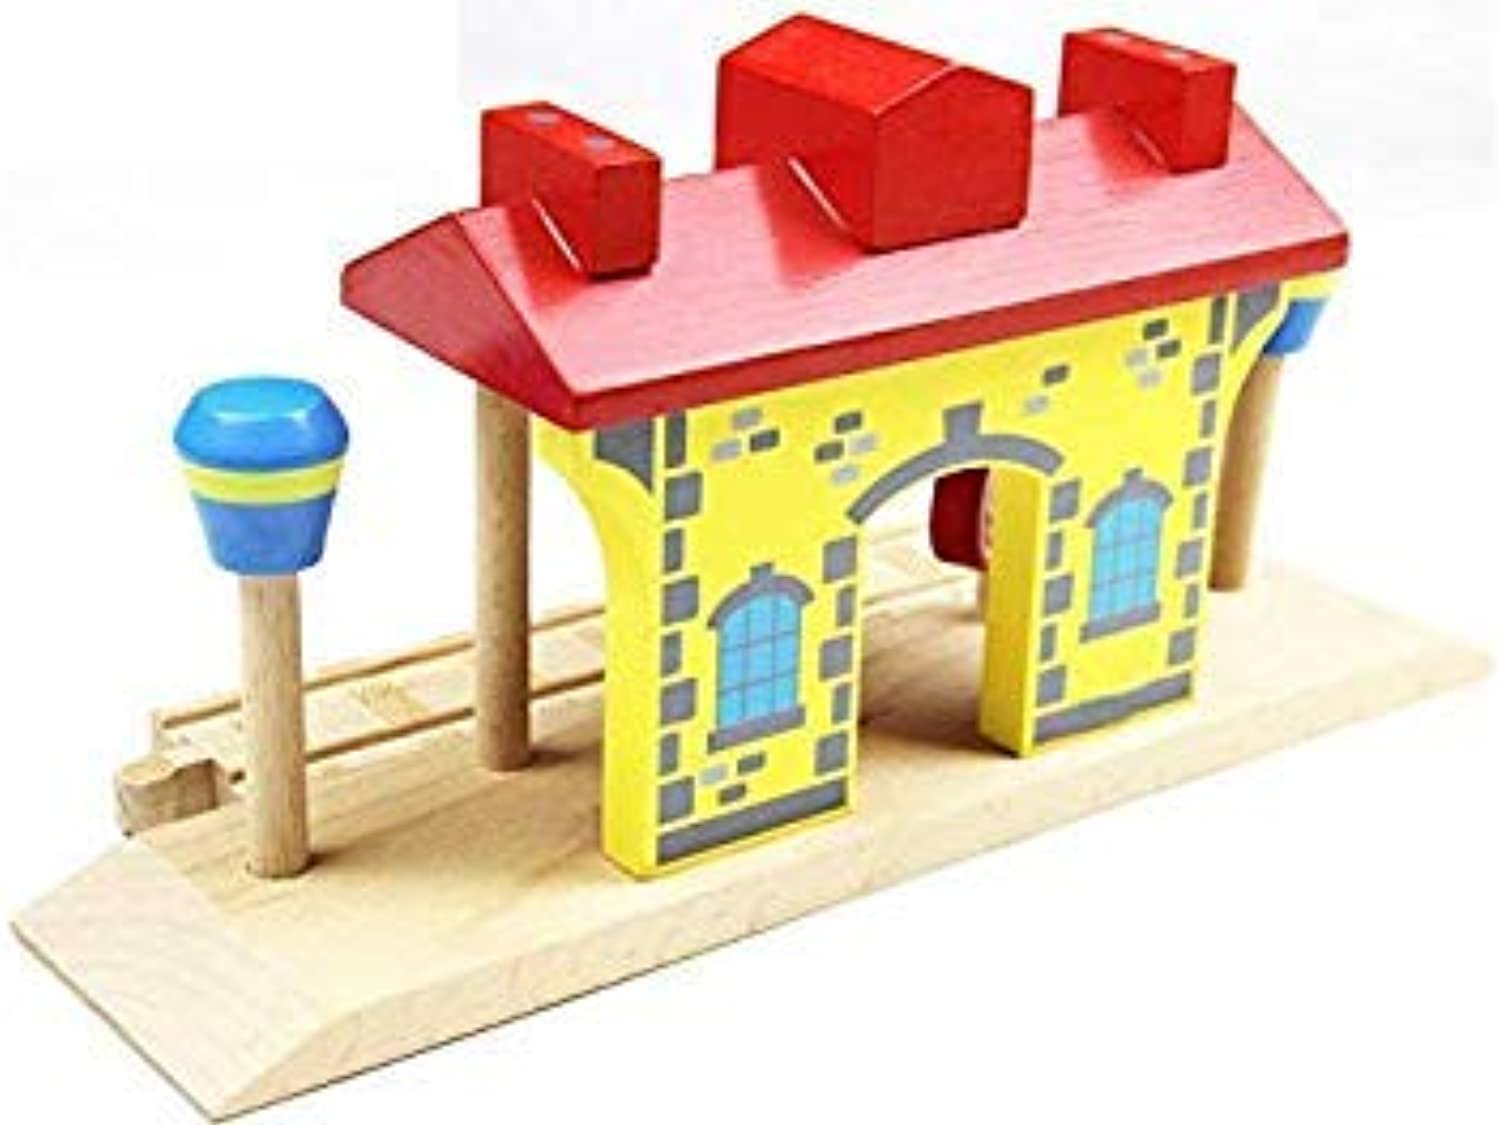 EDWONE All All All Kinds Train Garage Air Staion Wood Track Beech Wooden Railway Train Track Toy Accessories fit for Thomas Biro Long Station 6bf698